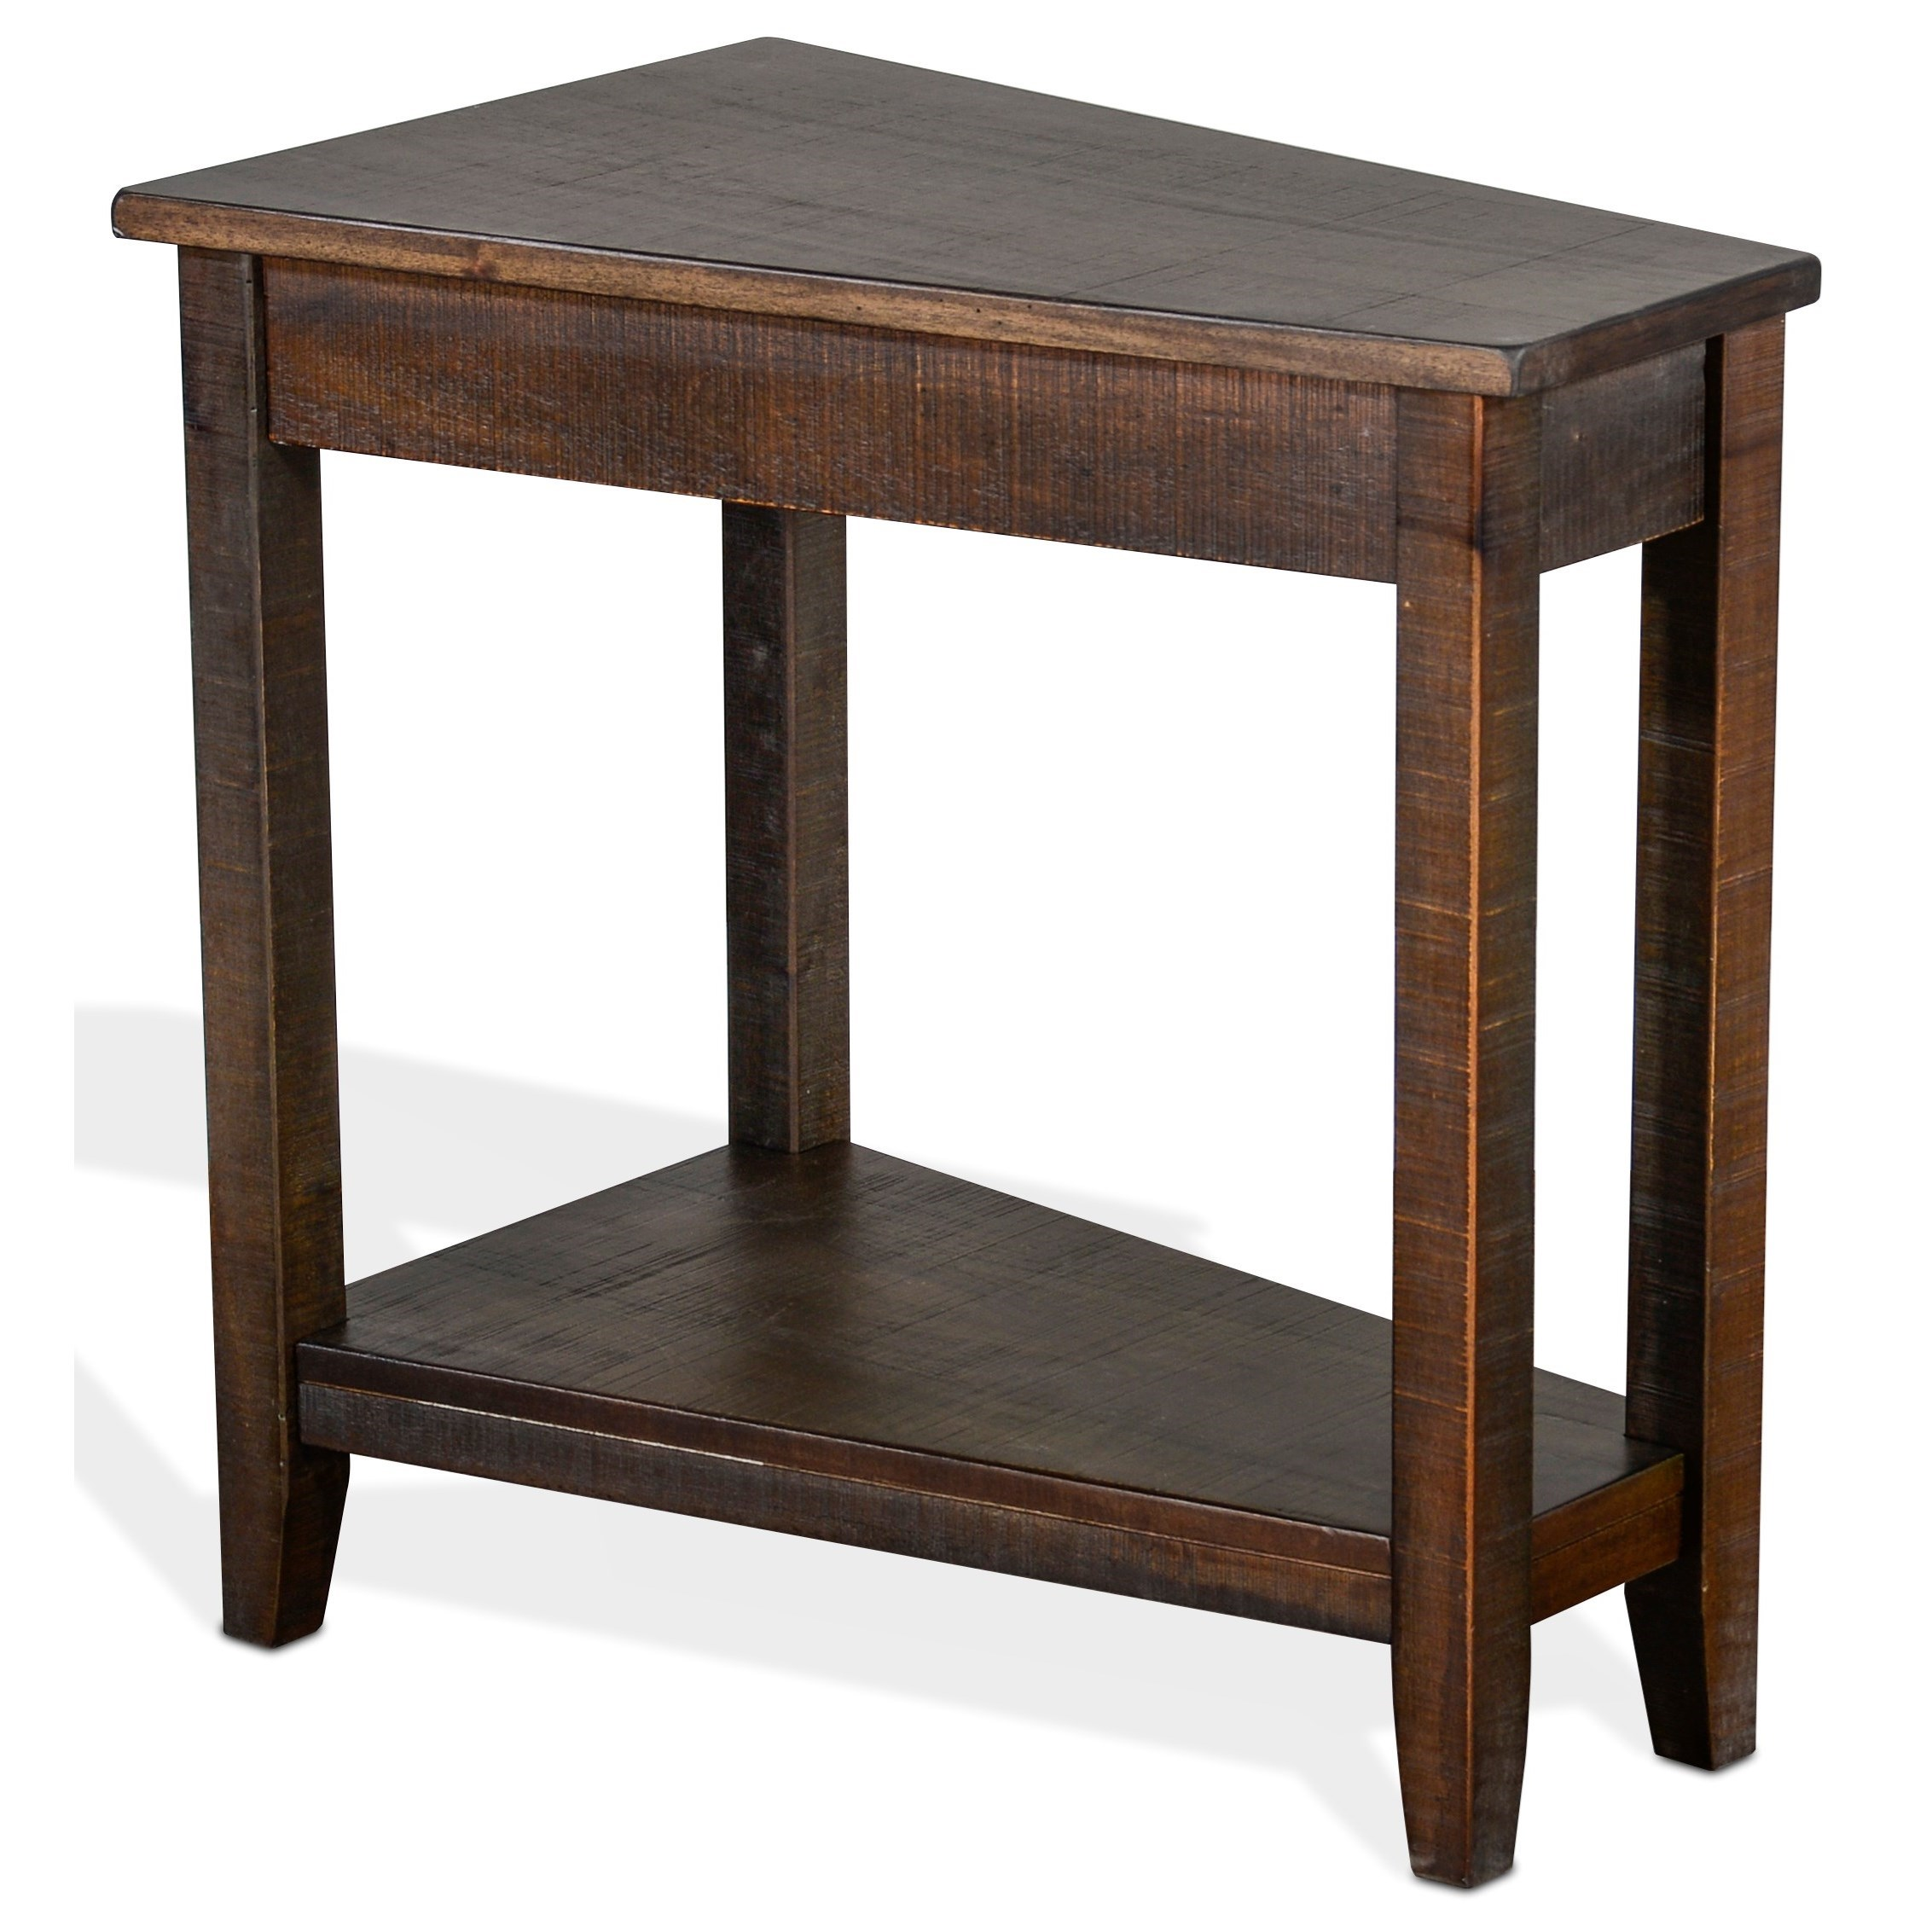 2226 Chair Side Table by Sunny Designs at Factory Direct Furniture